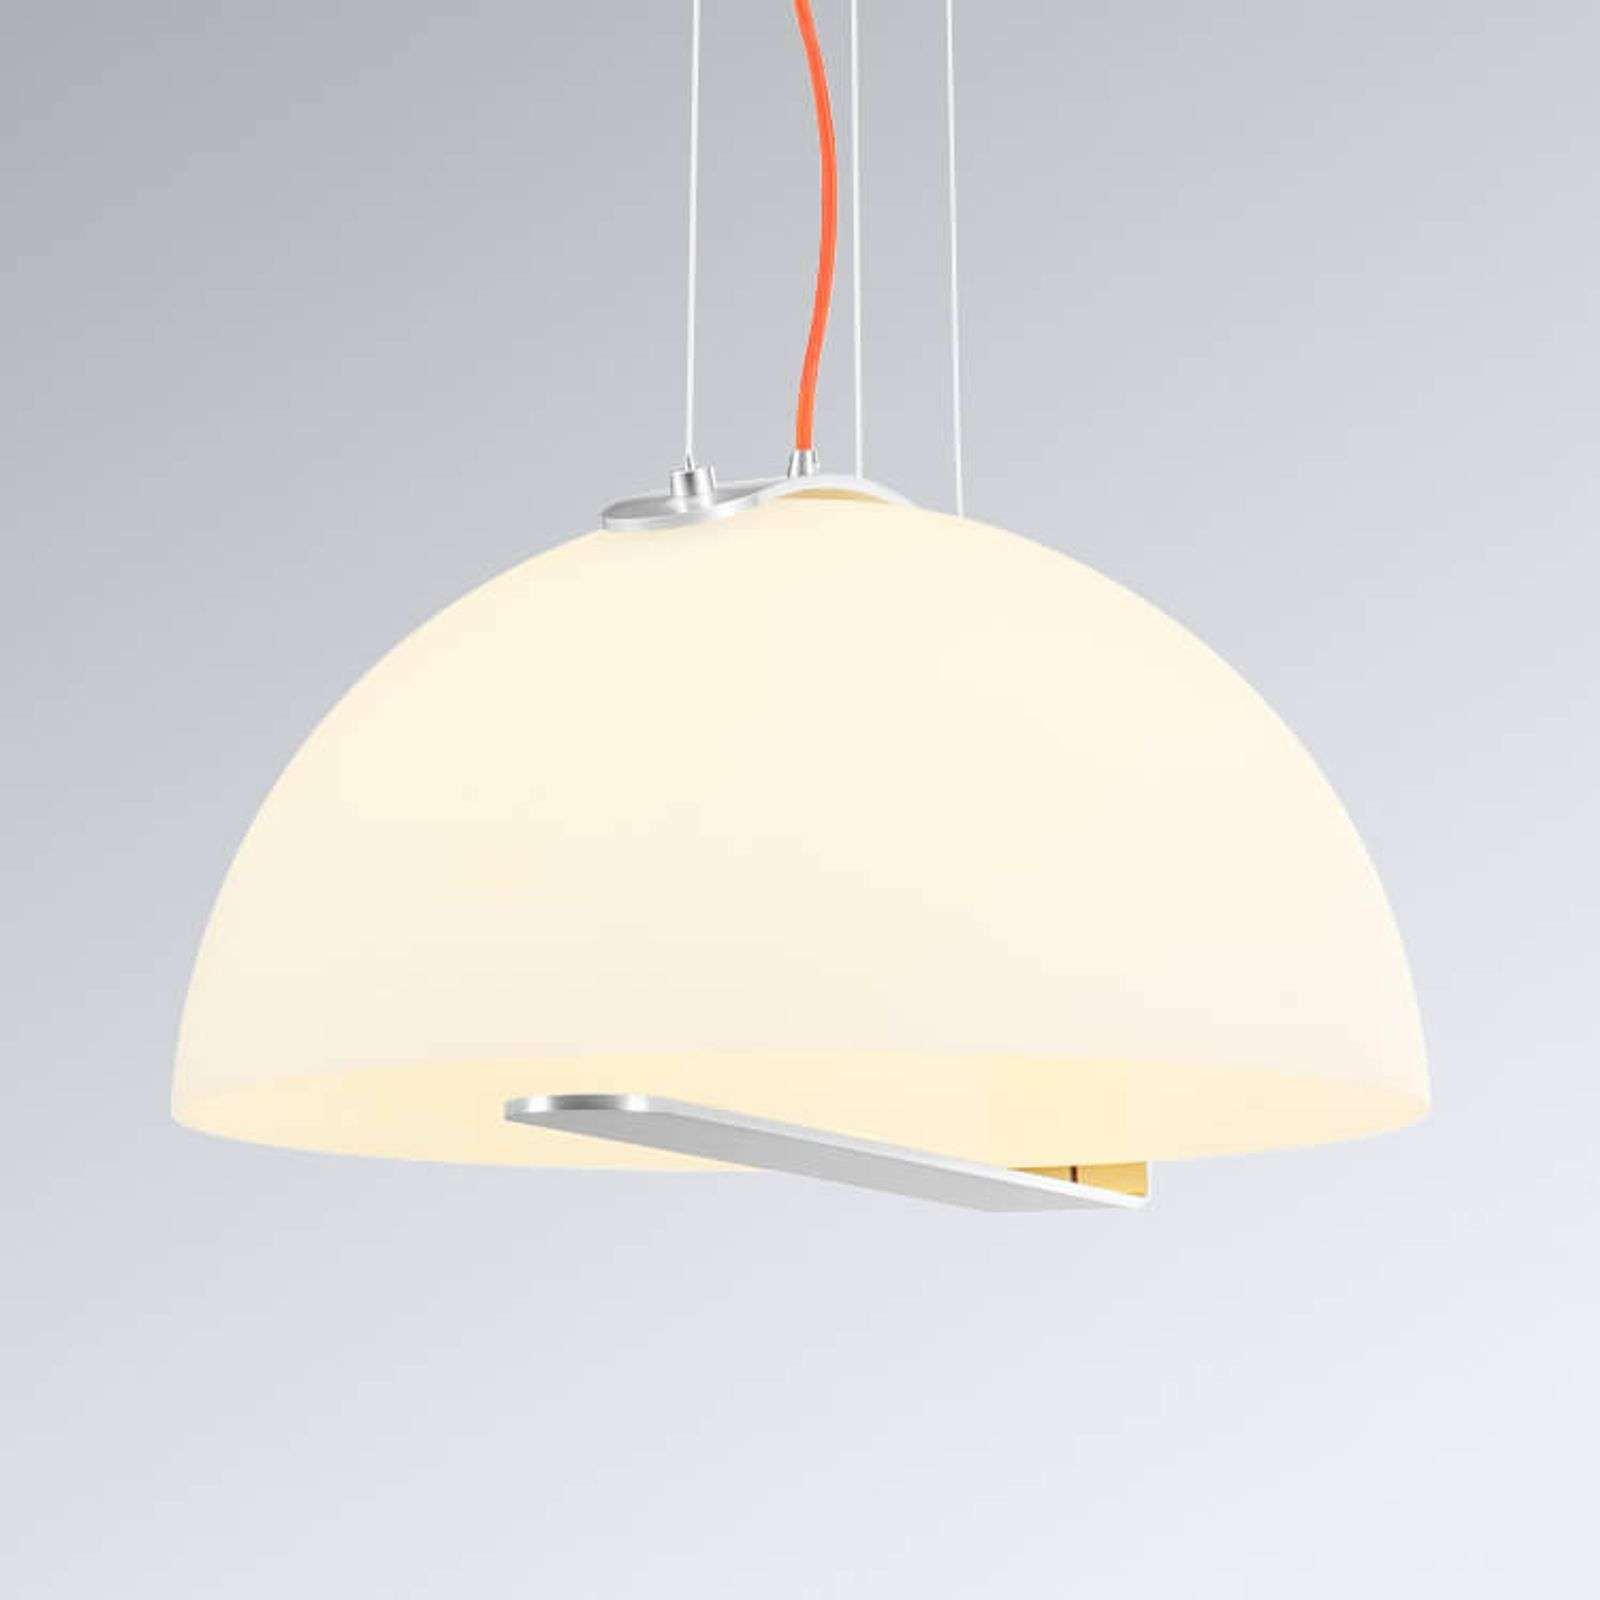 Belle suspension LED Brenda, abat-jour de verre